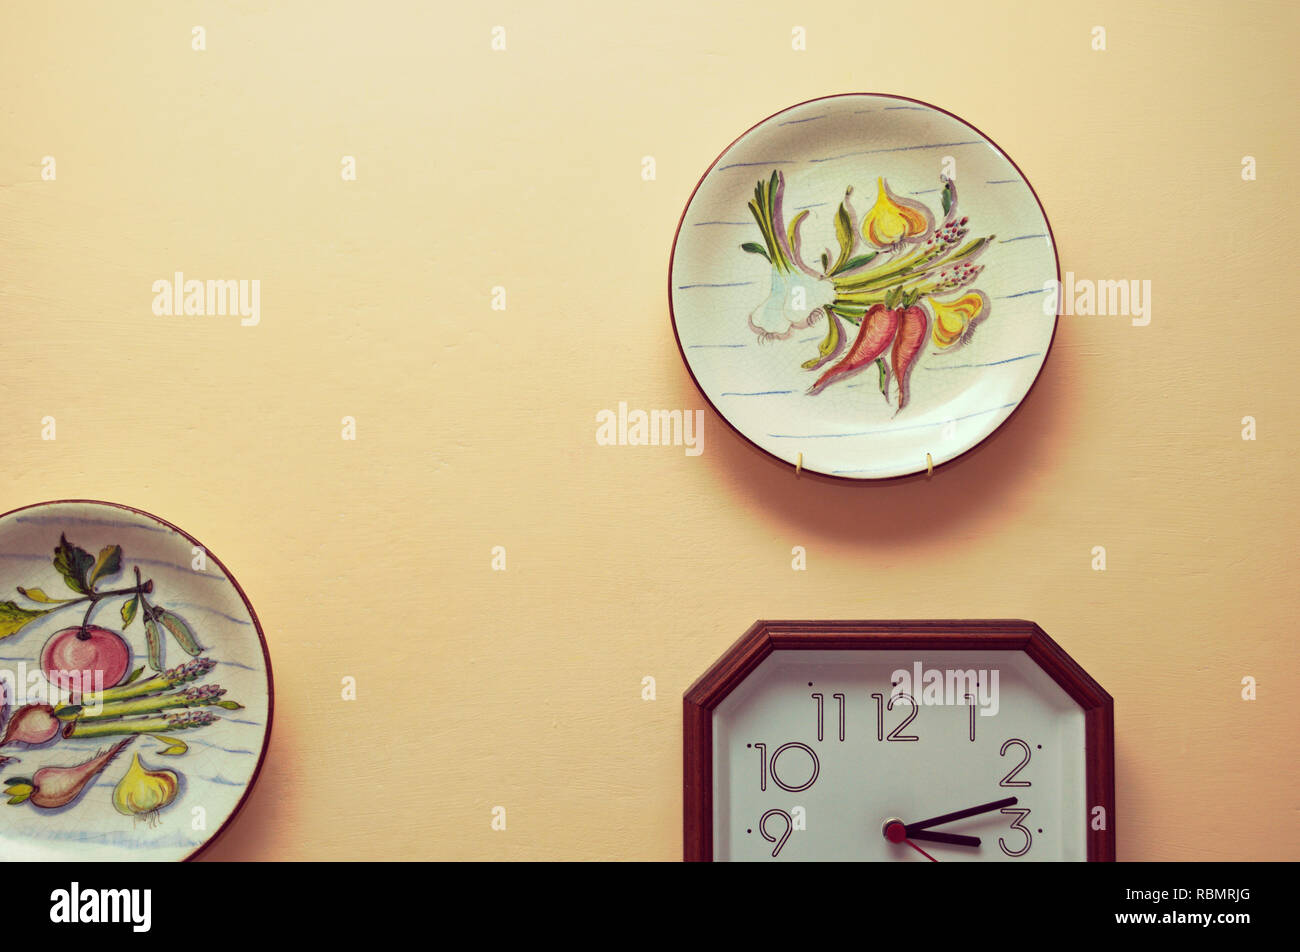 Kitchen Wall With Decorative Plates And Clock Stock Photo Alamy